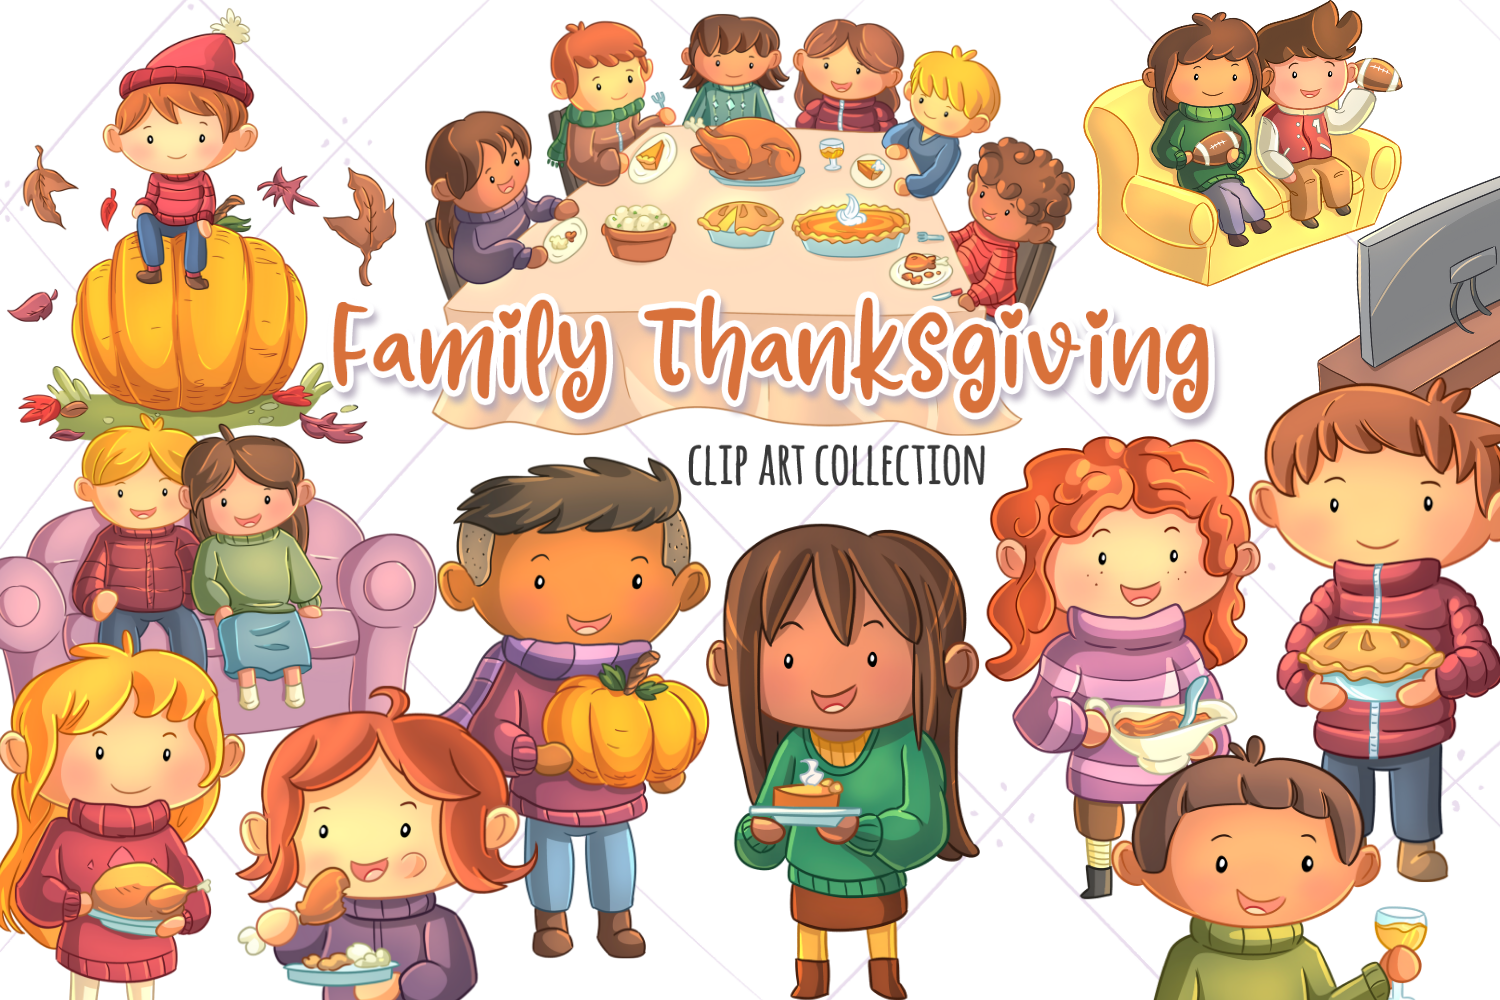 Family Thanksgiving Clip Art Collection (Graphic) by